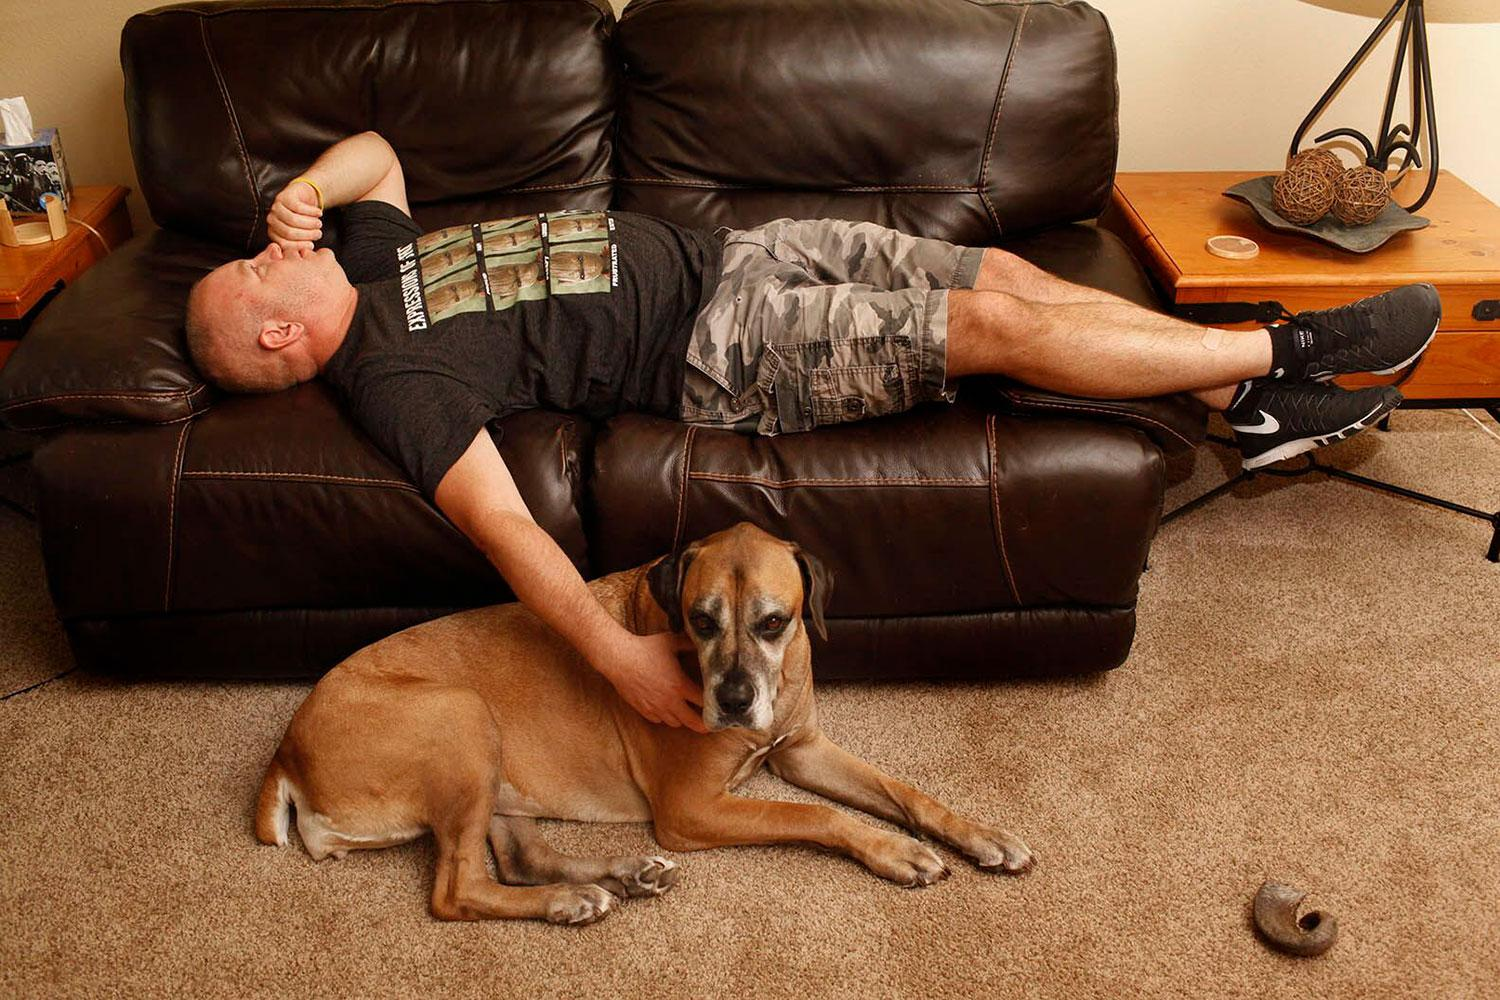 Man grieving on couch